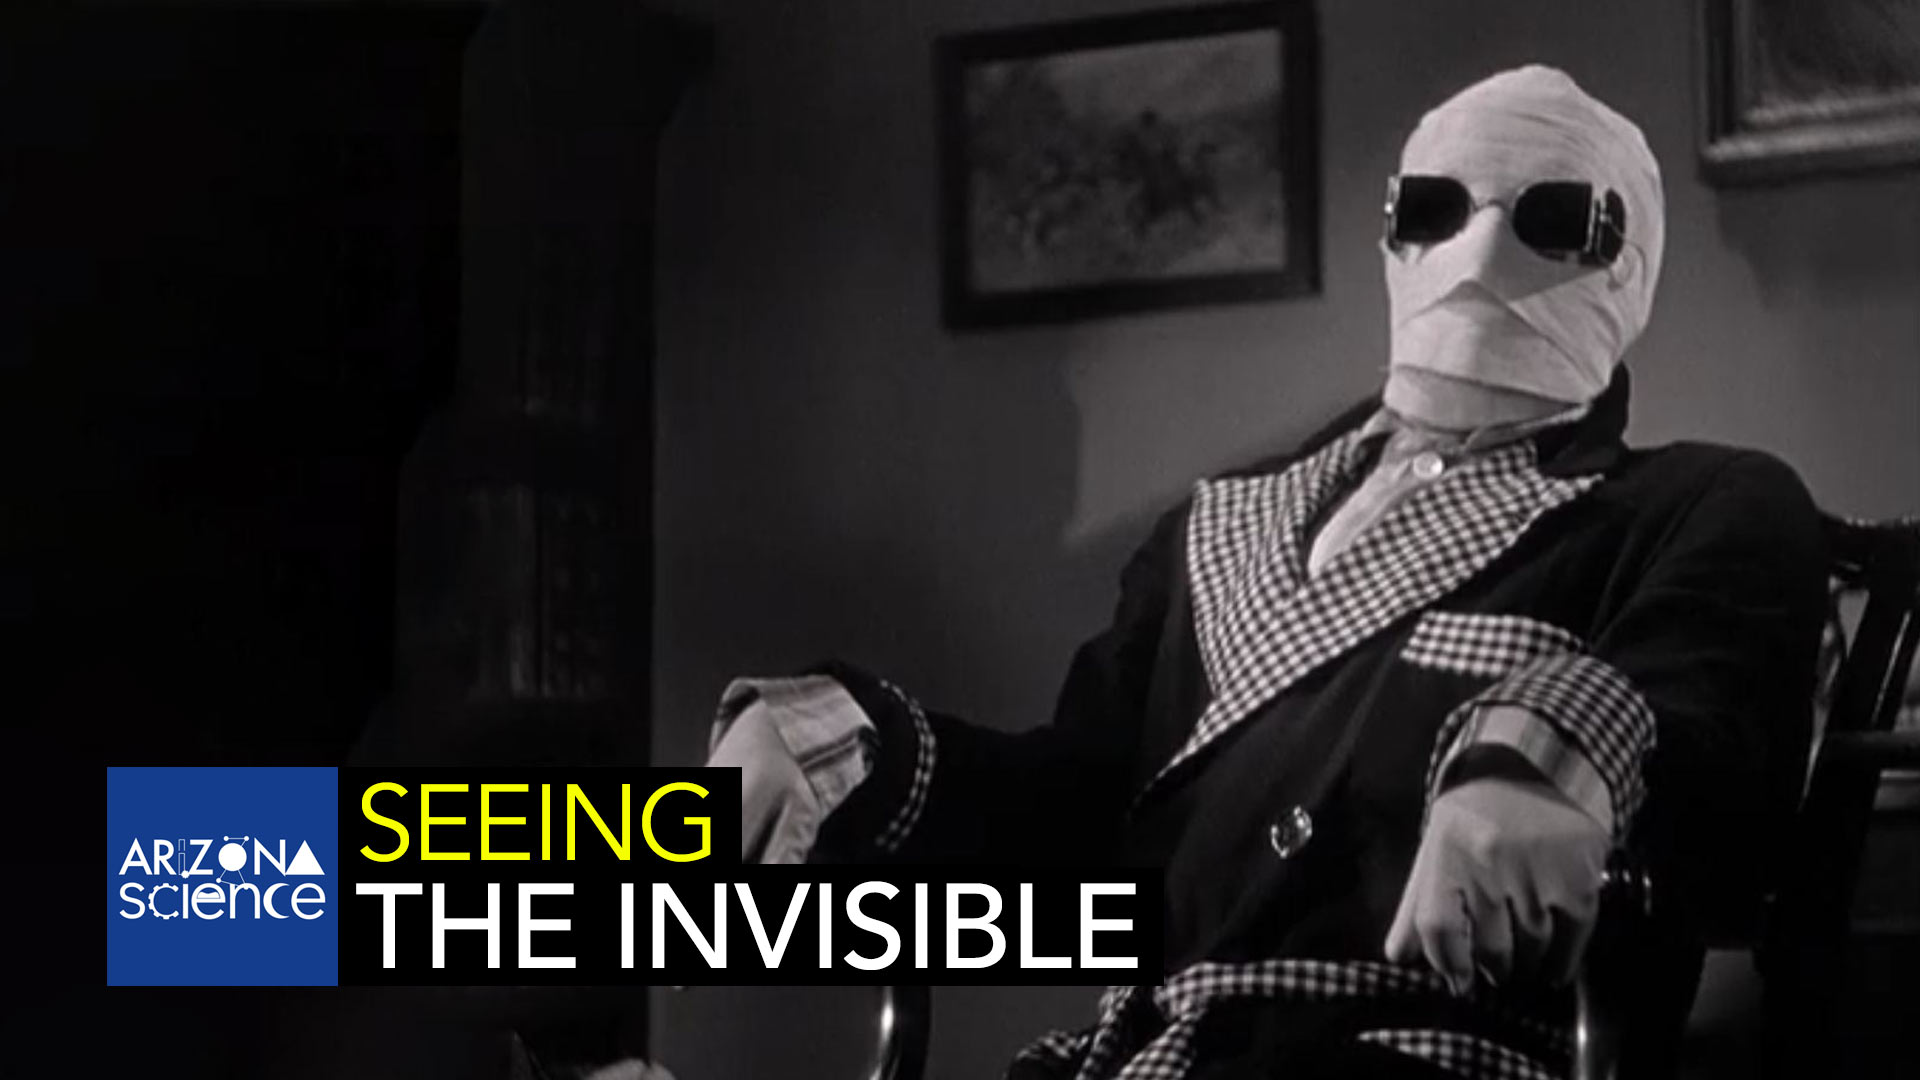 A still from the 1933 film adaptation of H.G. Wells' science fiction novel, The Invisible Man.